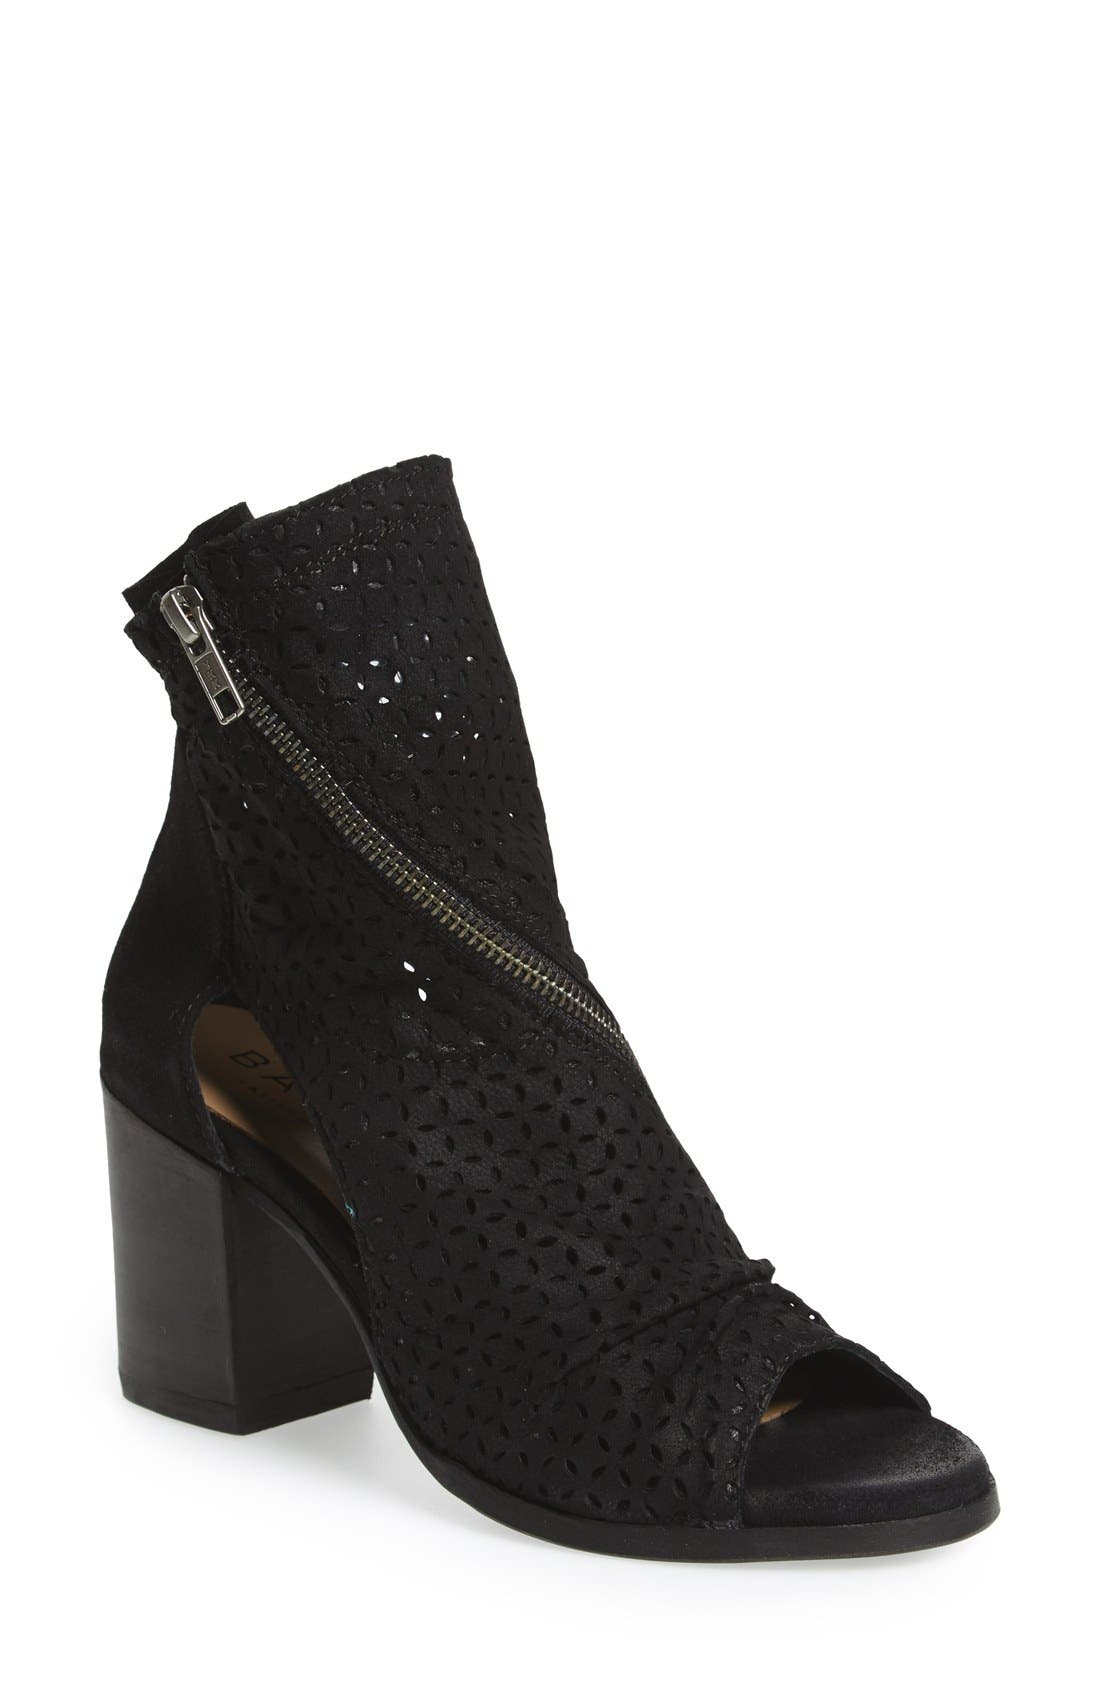 BASKE CALIFORNIA 'Aura' Open Toe Bootie